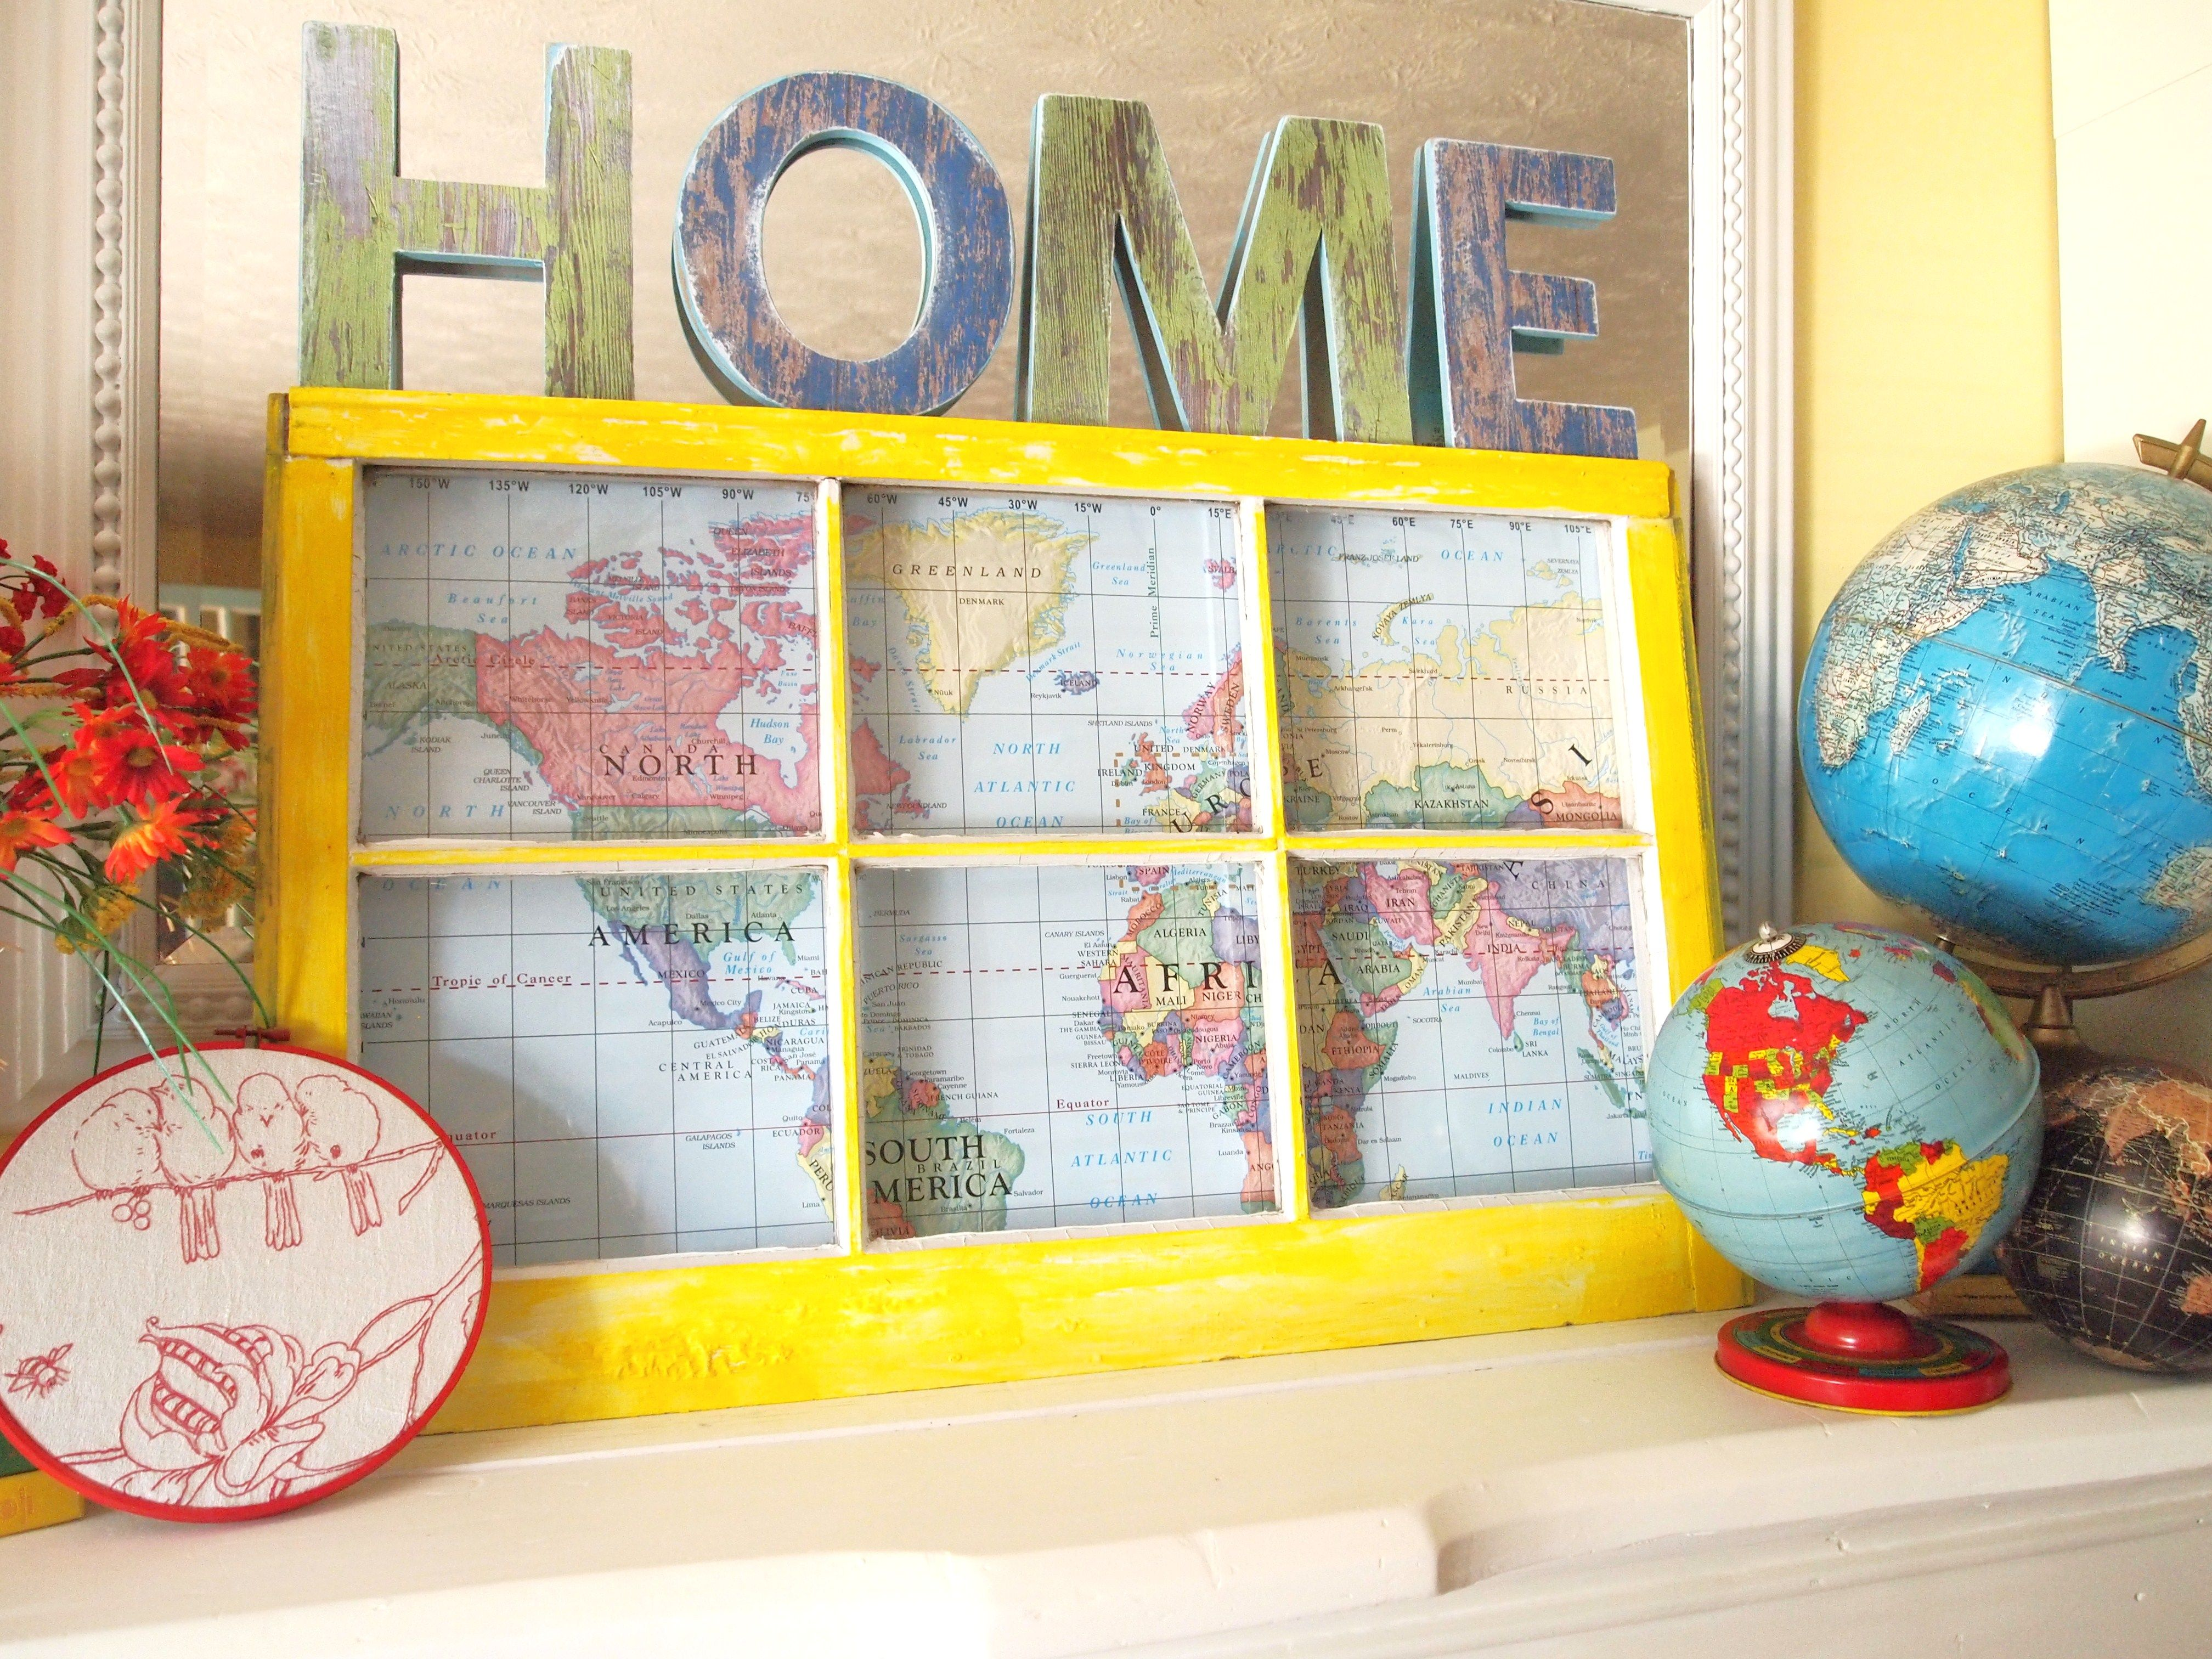 Inspired Ways To Use Old Windows | Window, Window frames and Upcycle